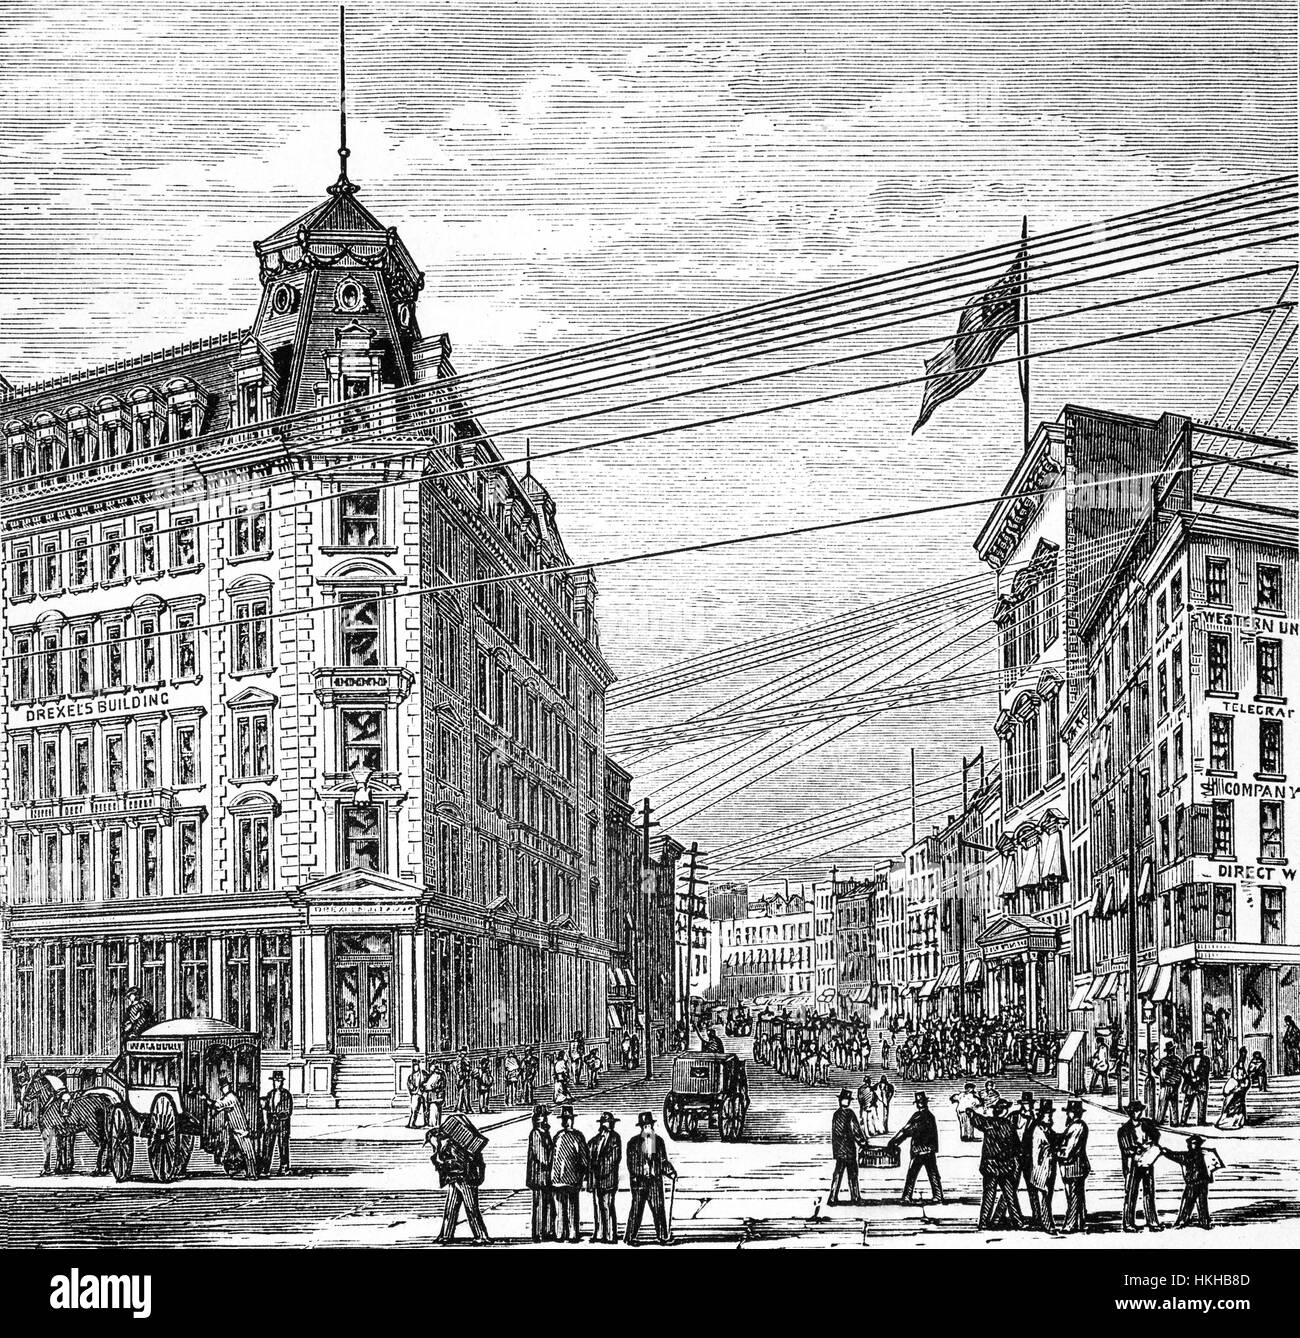 1879: The corner of Broad Street and Wall Street with Drexel's Building and  the Stock Exchange, New York City, United States of America.